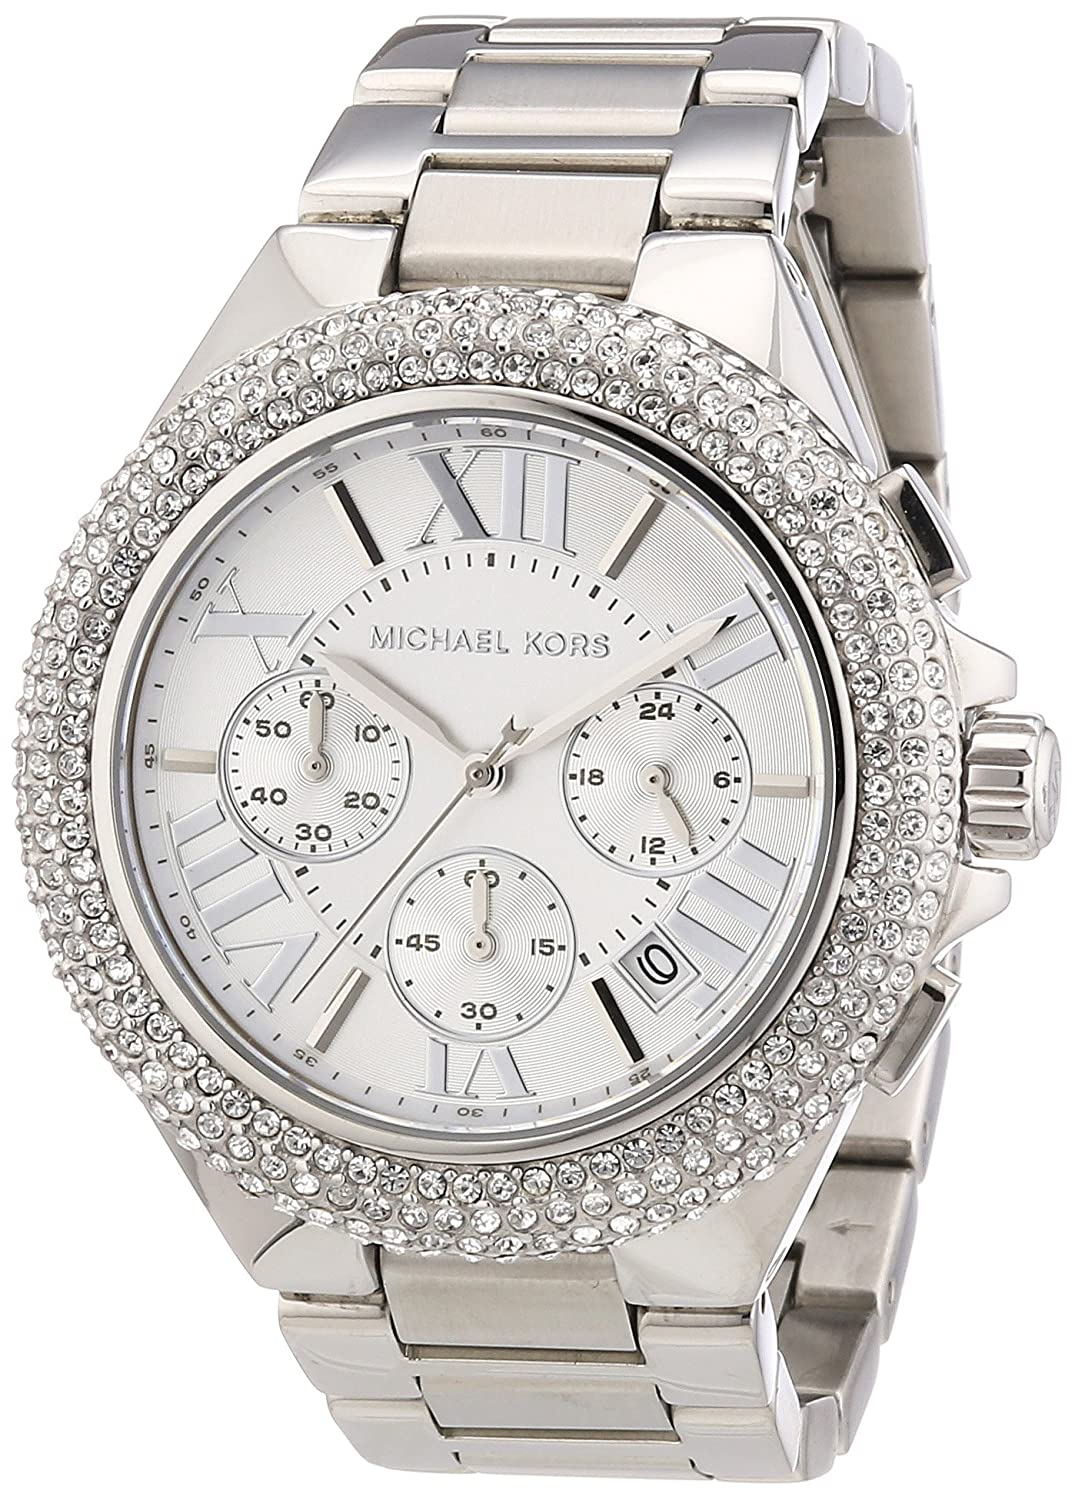 Michael Kors MK5634 Women s Chronograph Camille Stainless Steel Bracelet Watch